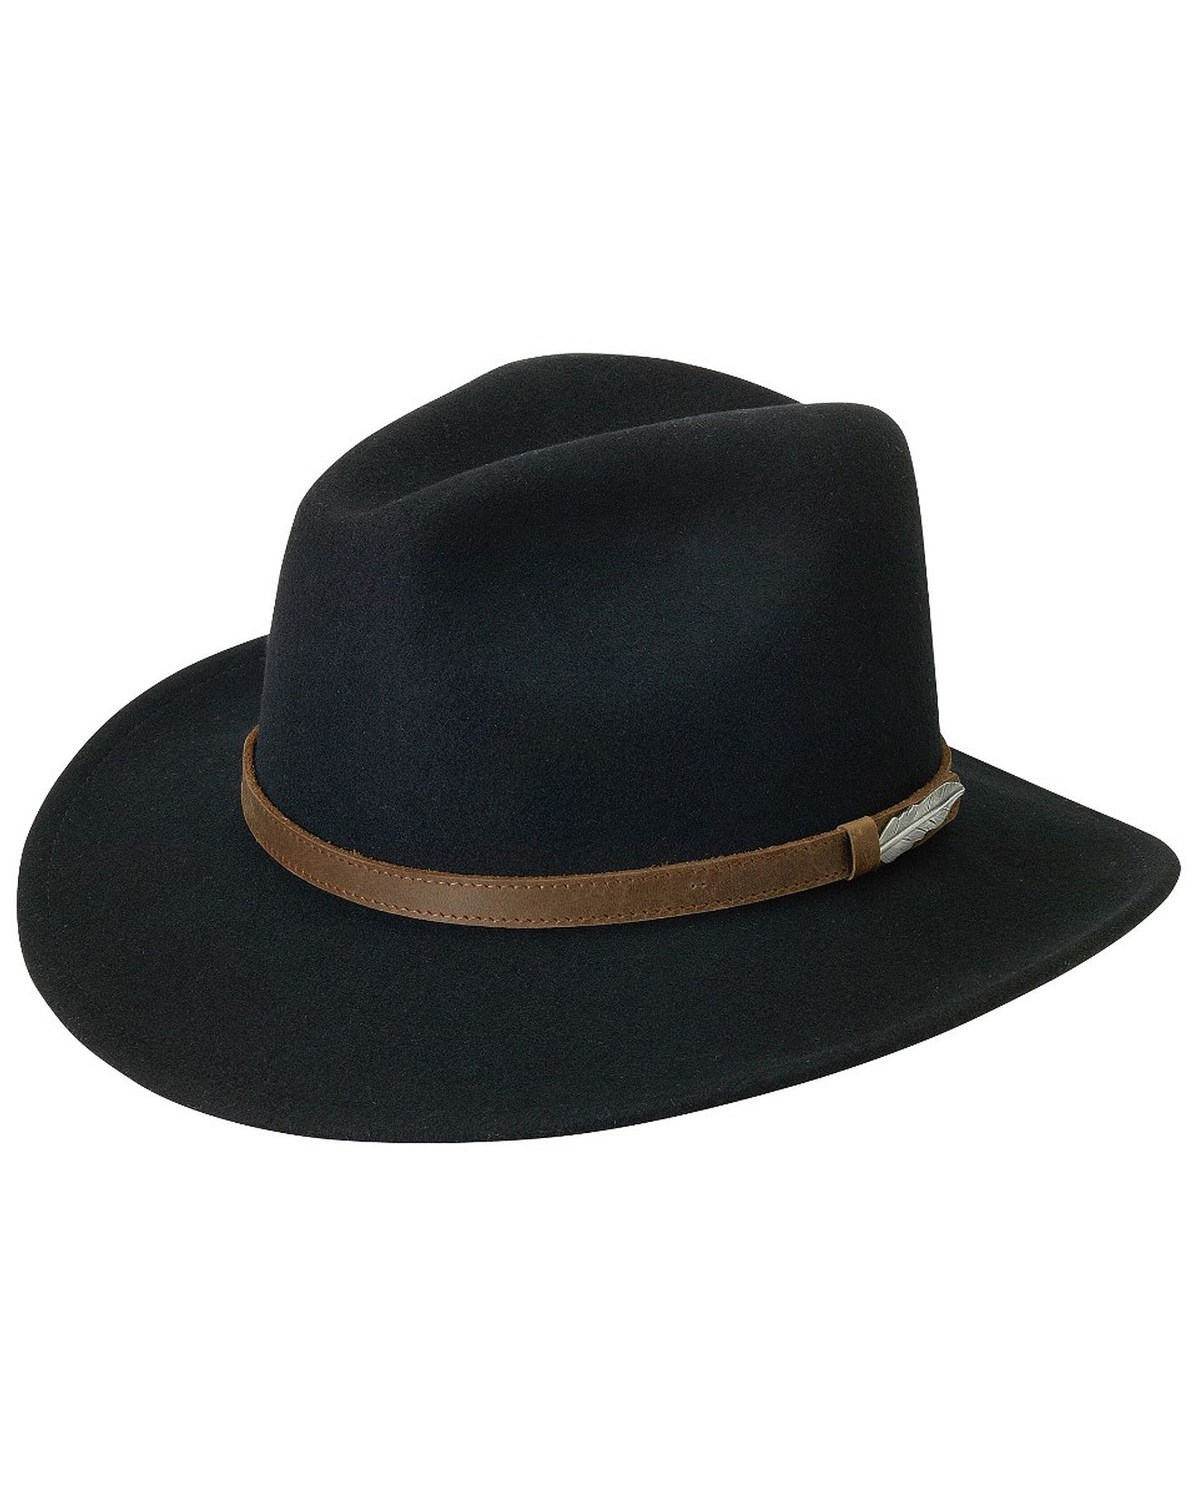 c4f4809a84510 Black Creek Small Brim Crushable Wool Felt Hat